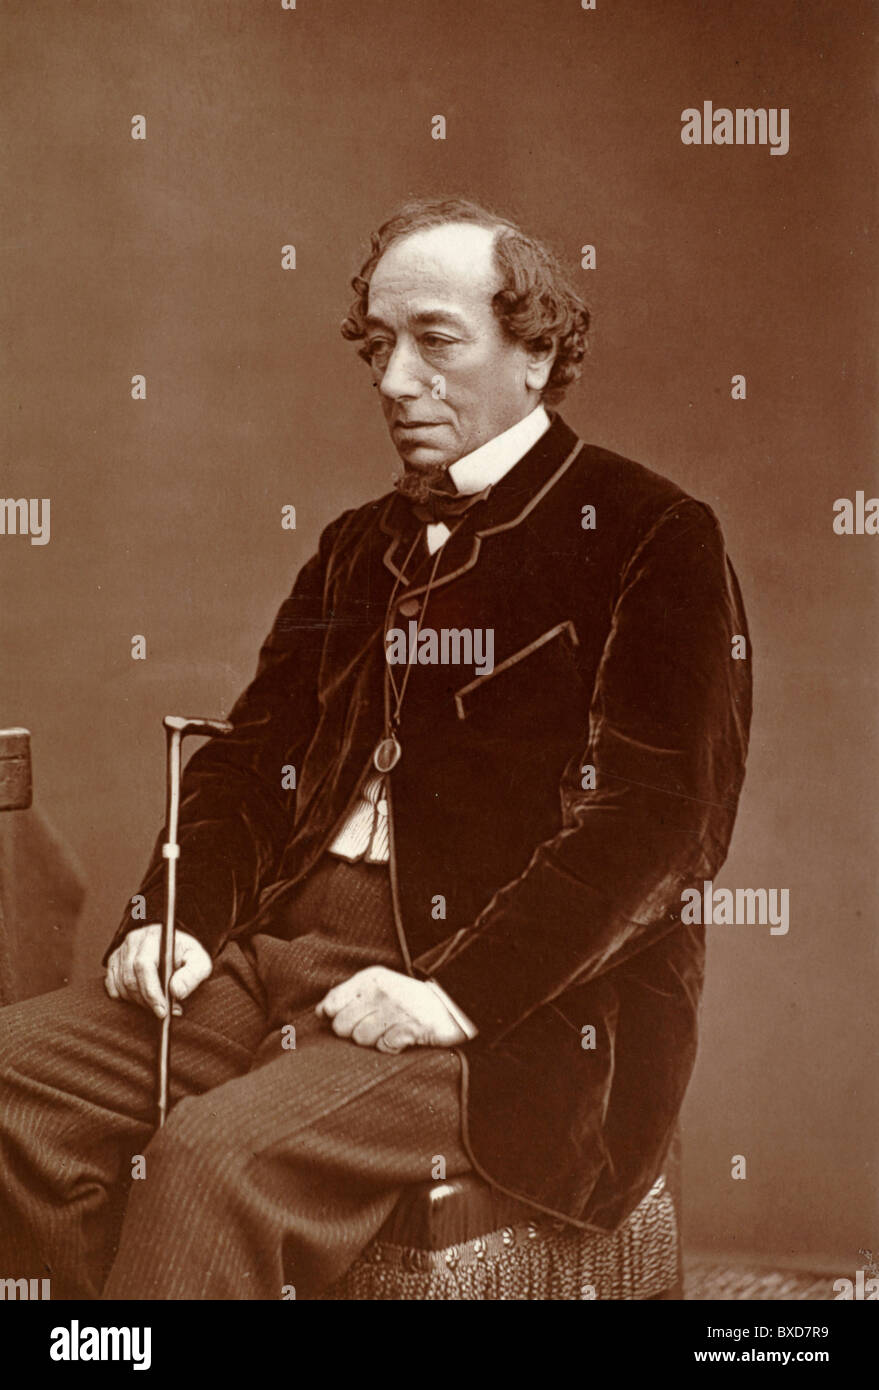 Portrait Benjamin Disraeli (1804-81) British Conservative Politician and Prime Minister Seated with Walking Stick. Vintage Albumen Print or Photograph c1870. Stock Photo